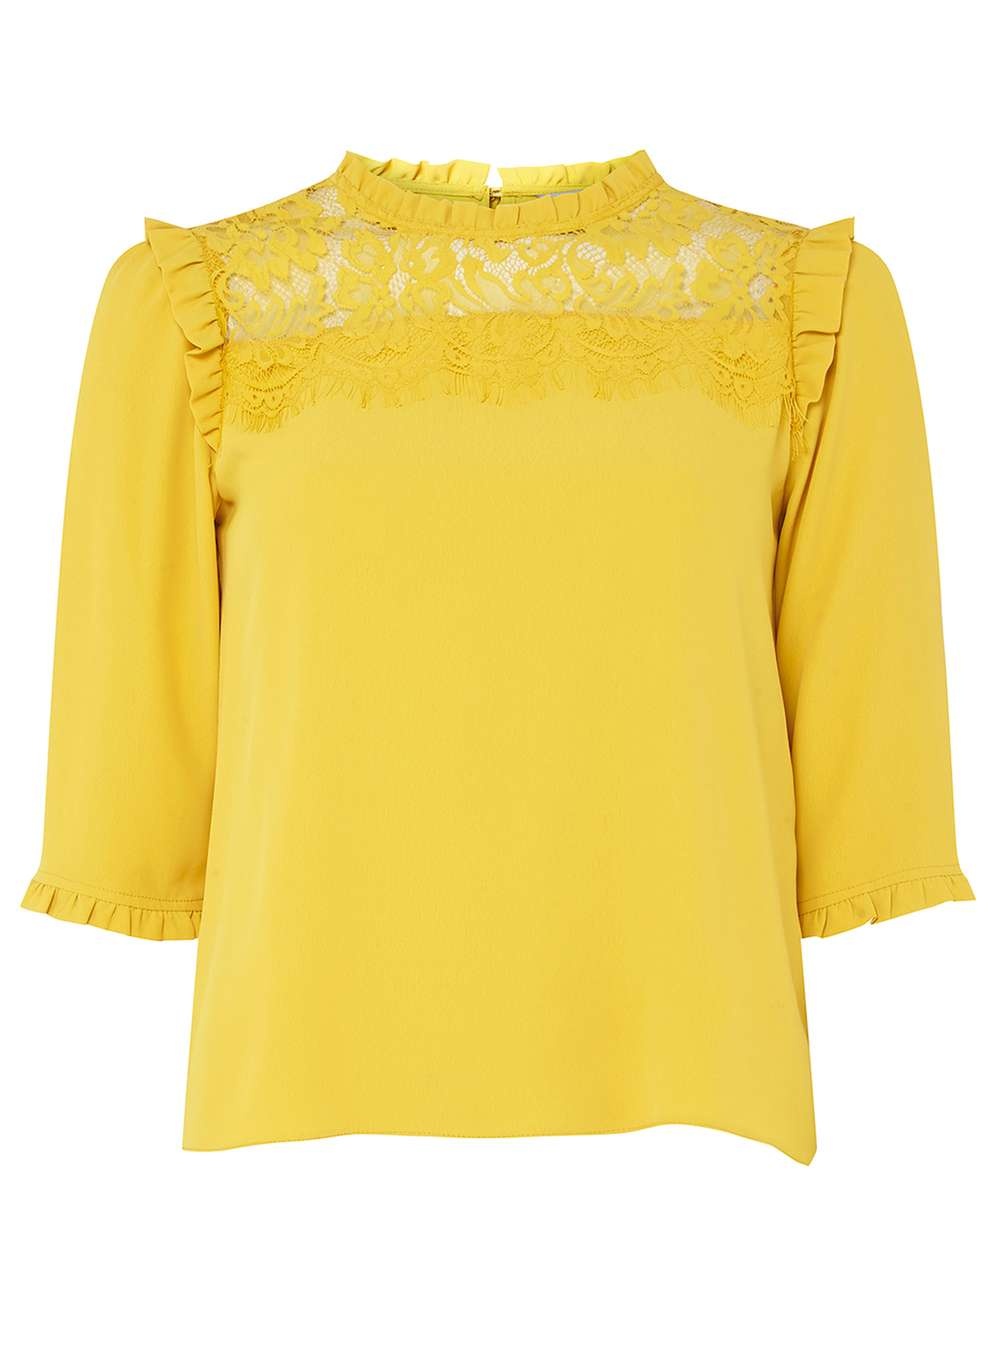 5a54e32c3d4 Petite Yellow Lace Yoke Blouse Was £25.00 Now £18.75 Click to visit Dorothy  Perkins